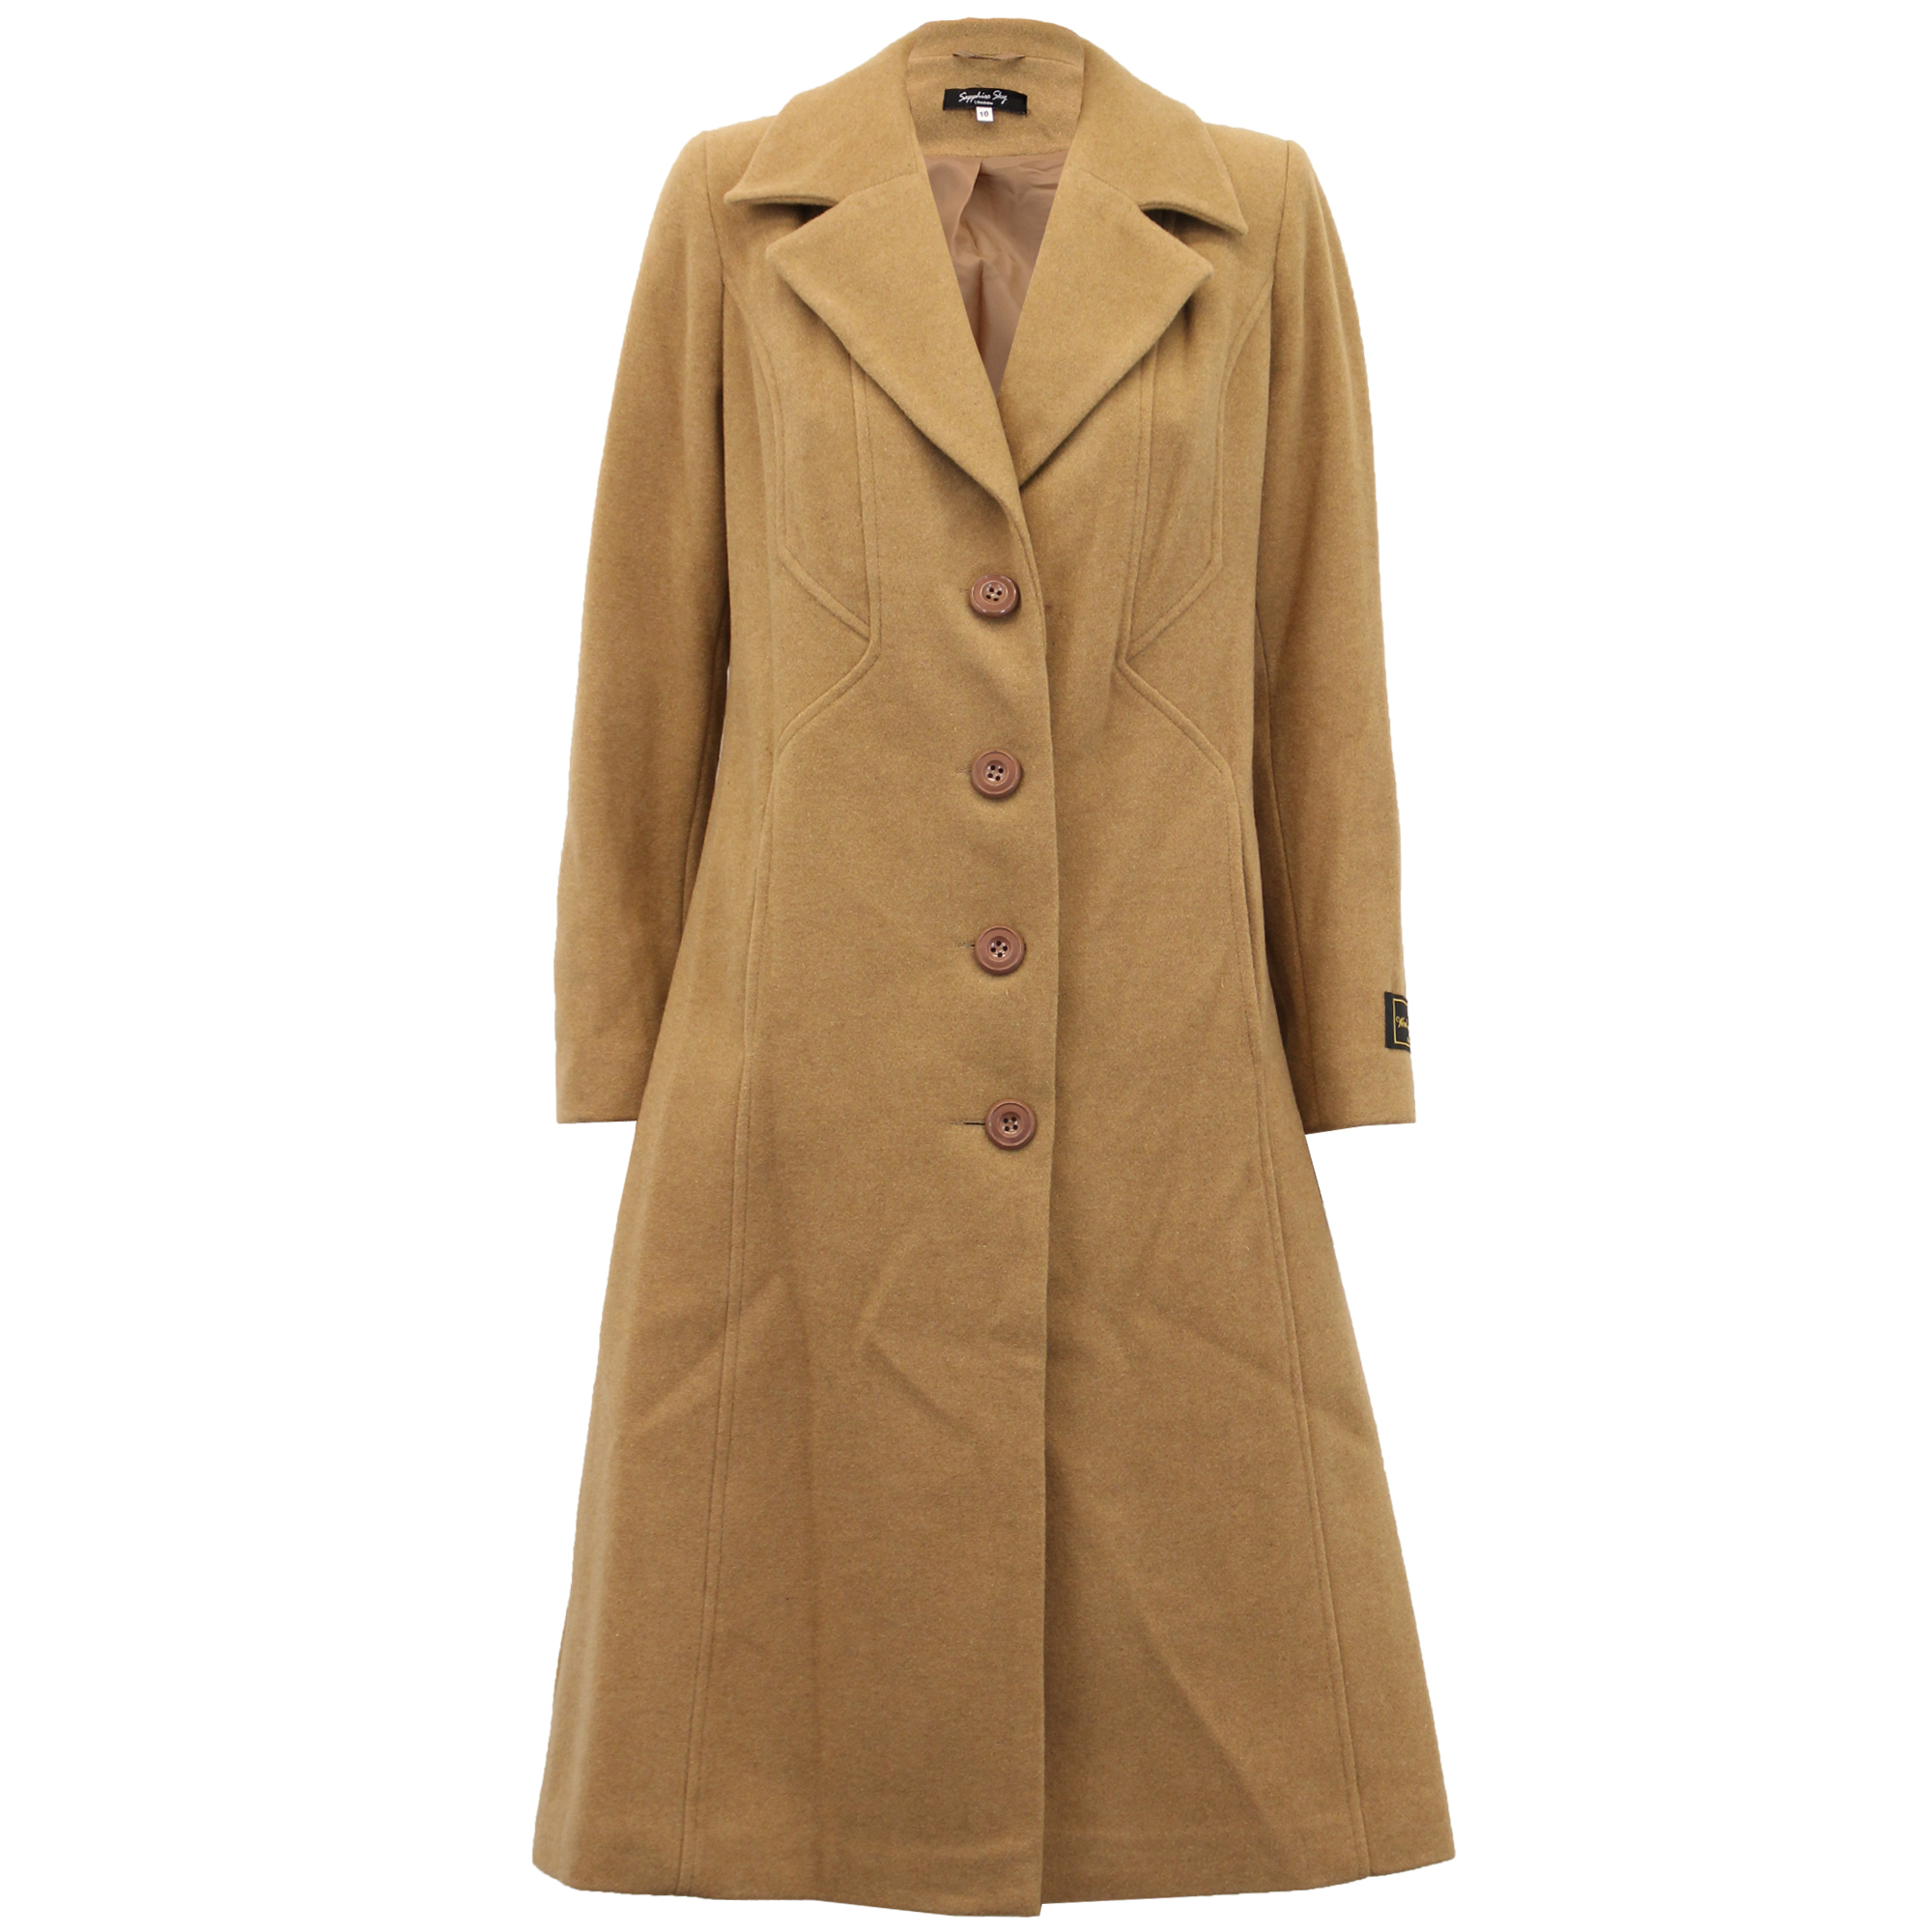 Free Shipping with $50 purchase at neo-craft.gq Shop neo-craft.gq for Women s casual jackets and Women s wool coats in classic styles that keep their good looks through seasons of wear.